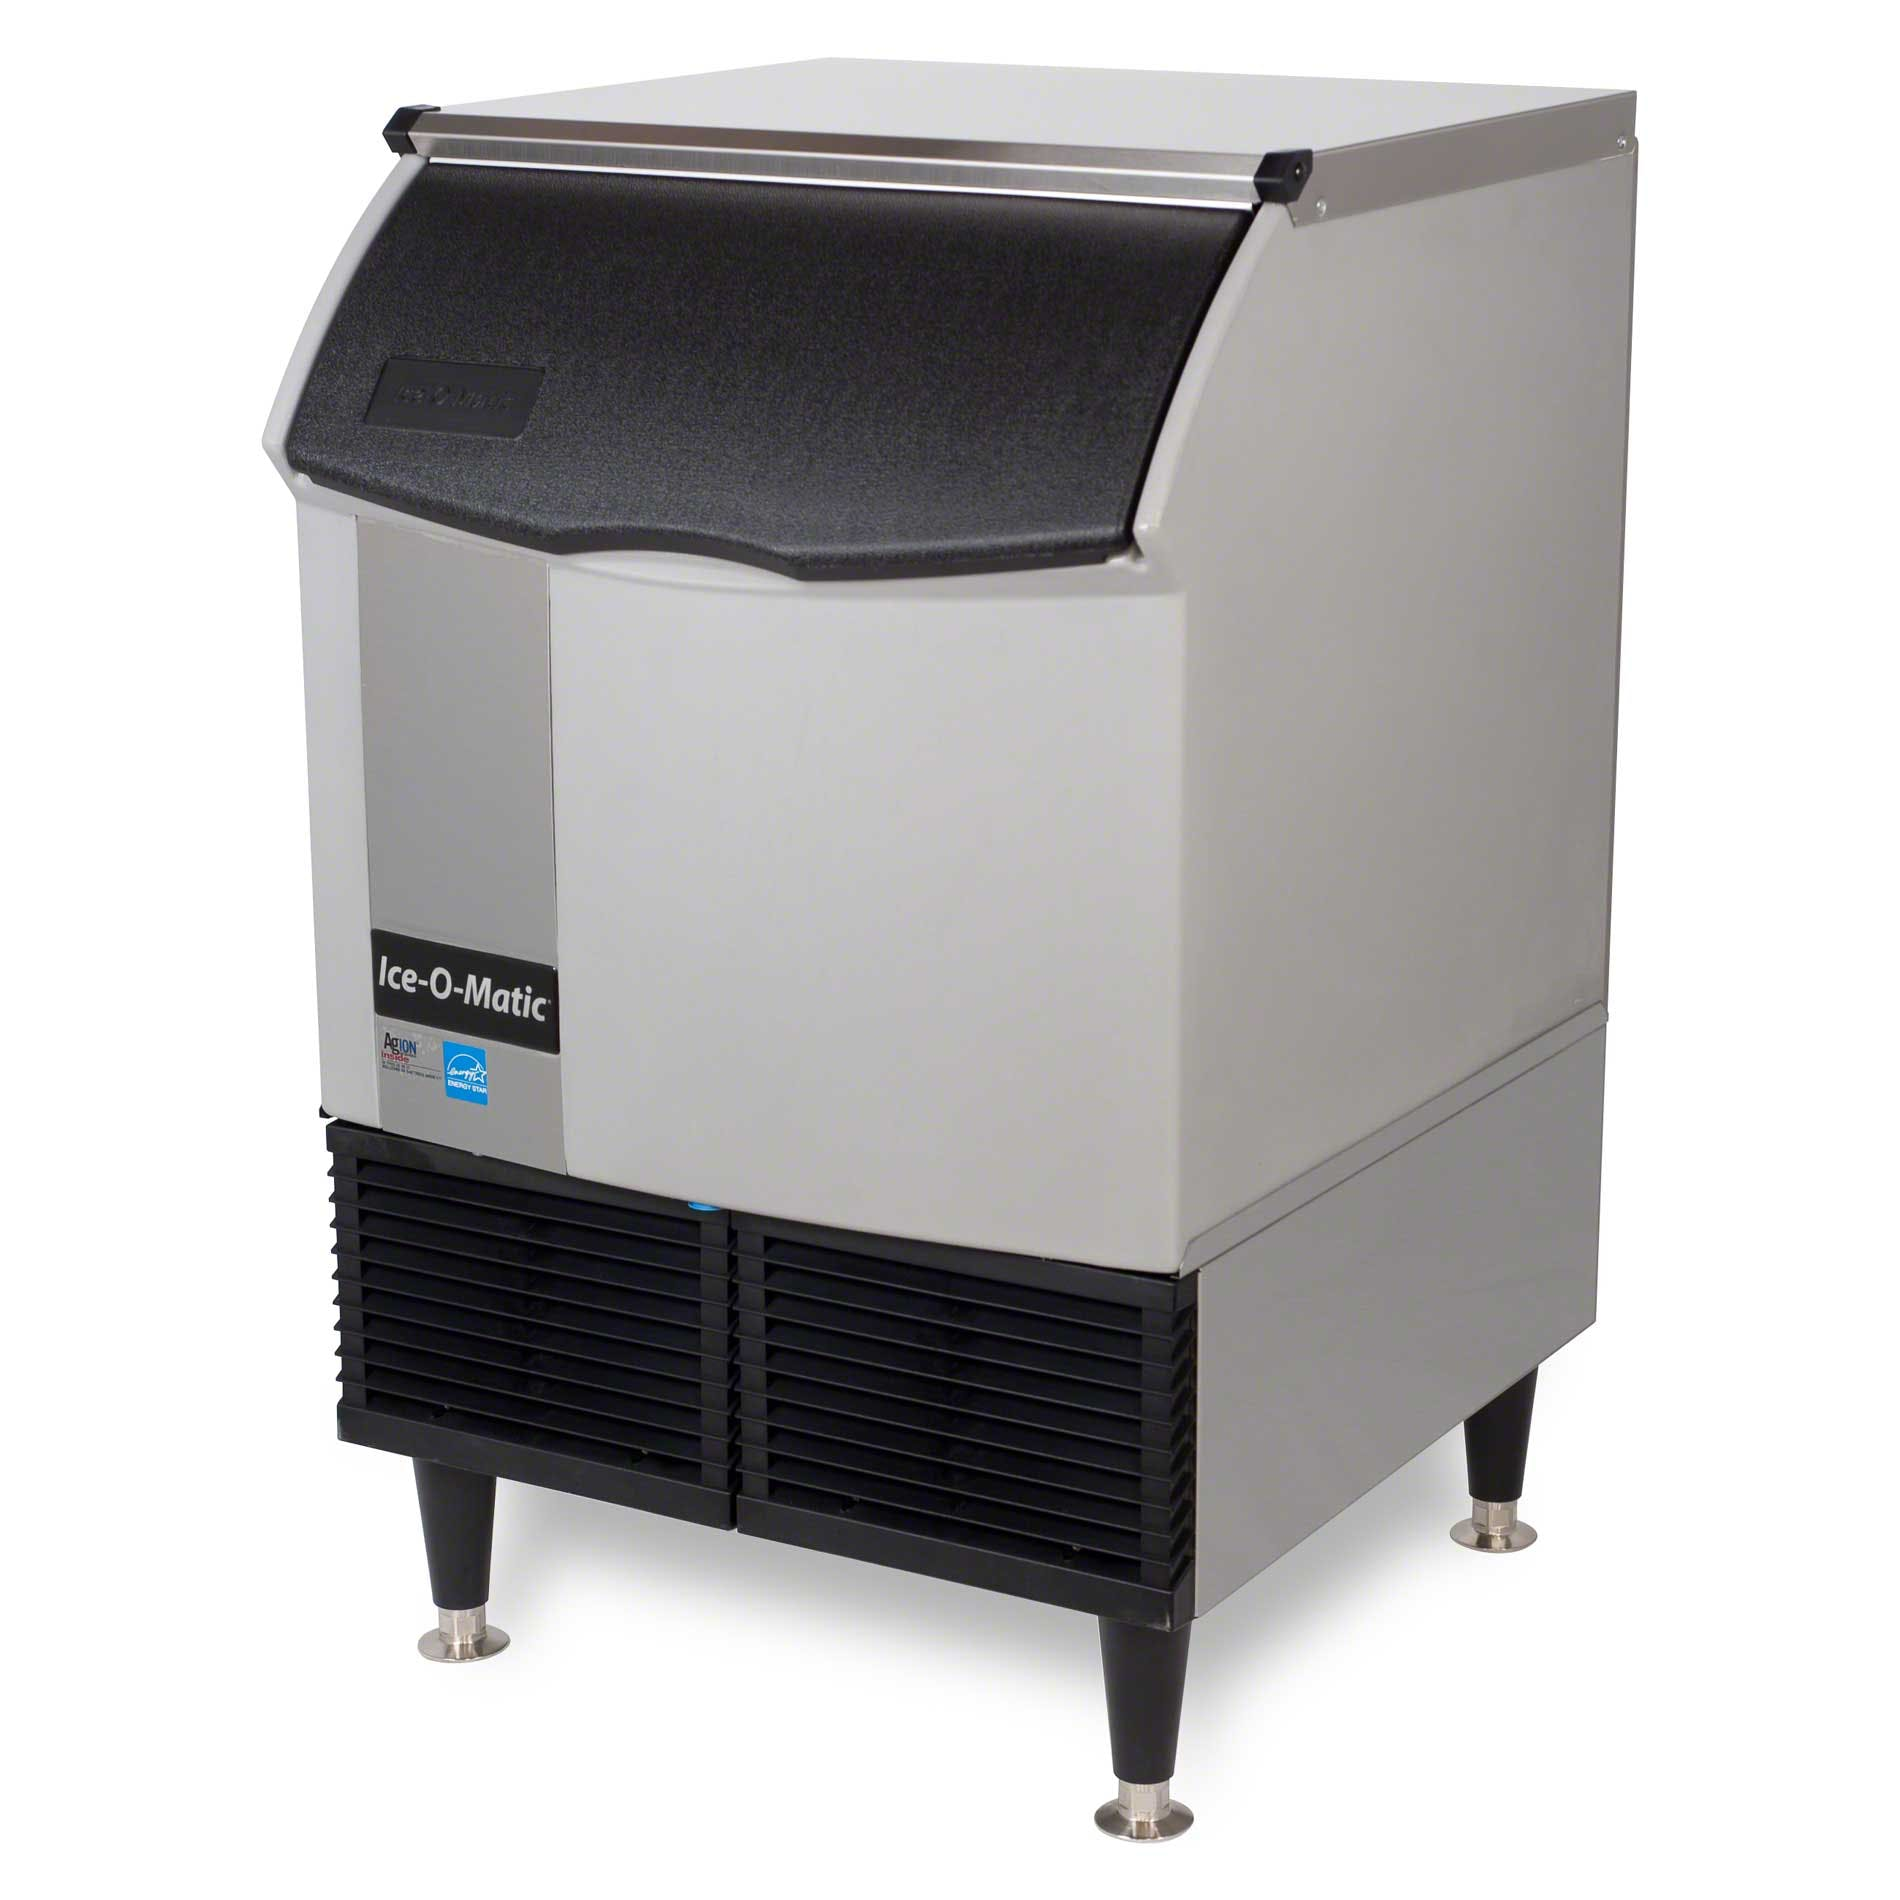 Ice-O-Matic - ICEU226HA 241 lb Self-Contained Half Cube Ice Machine Ice machine sold by Food Service Warehouse